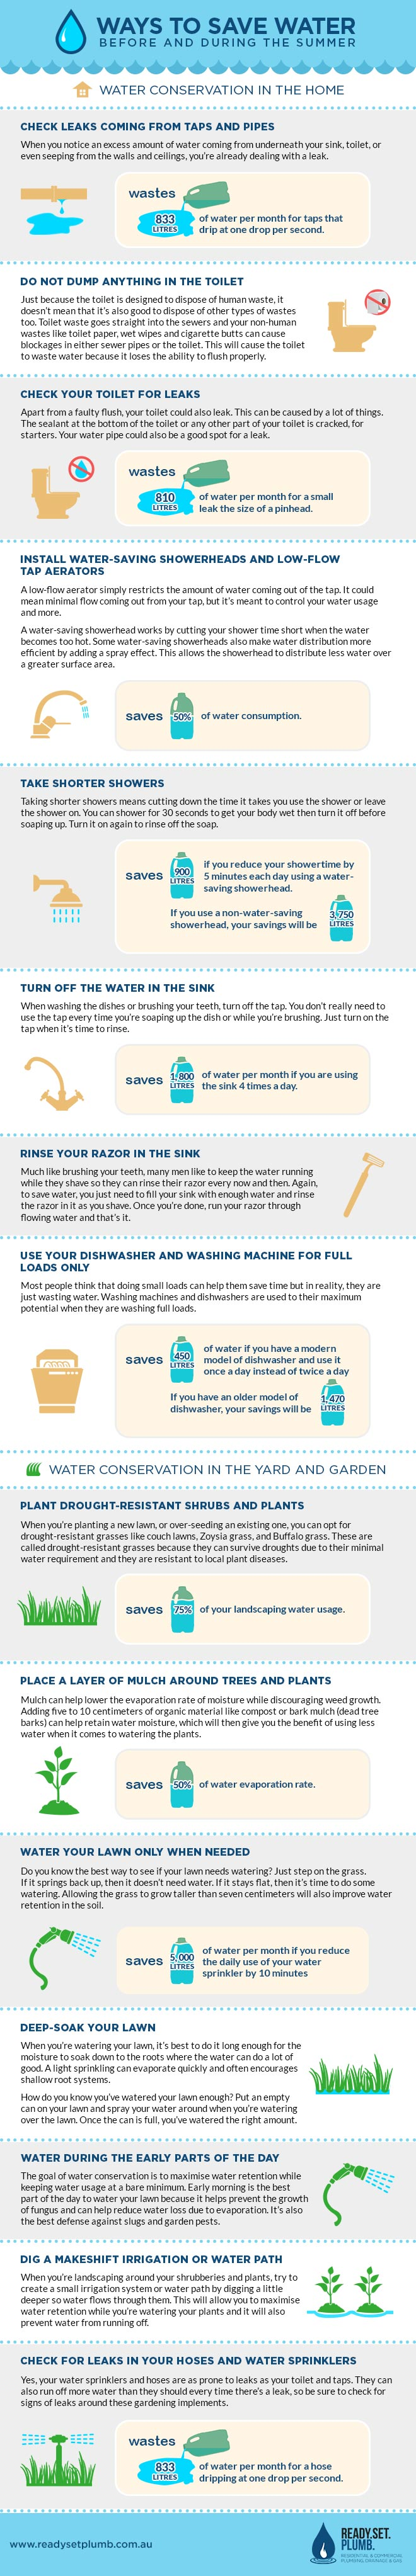 02-ways-to-save-water-before-and-during-summer (4)